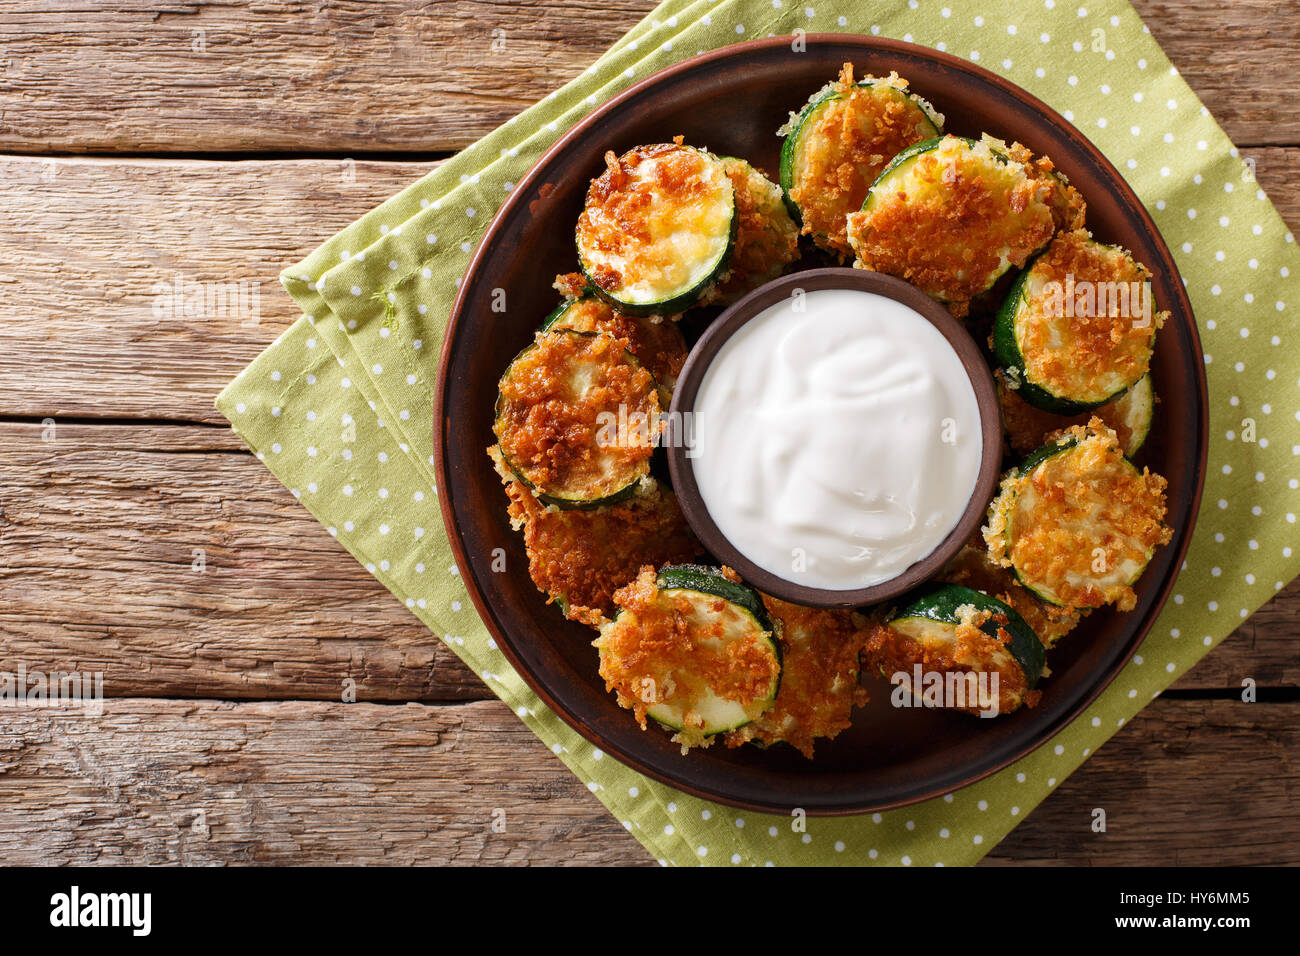 Zucchini in breaded Panko with sour cream close-up on the table. horizontal view from above - Stock Image